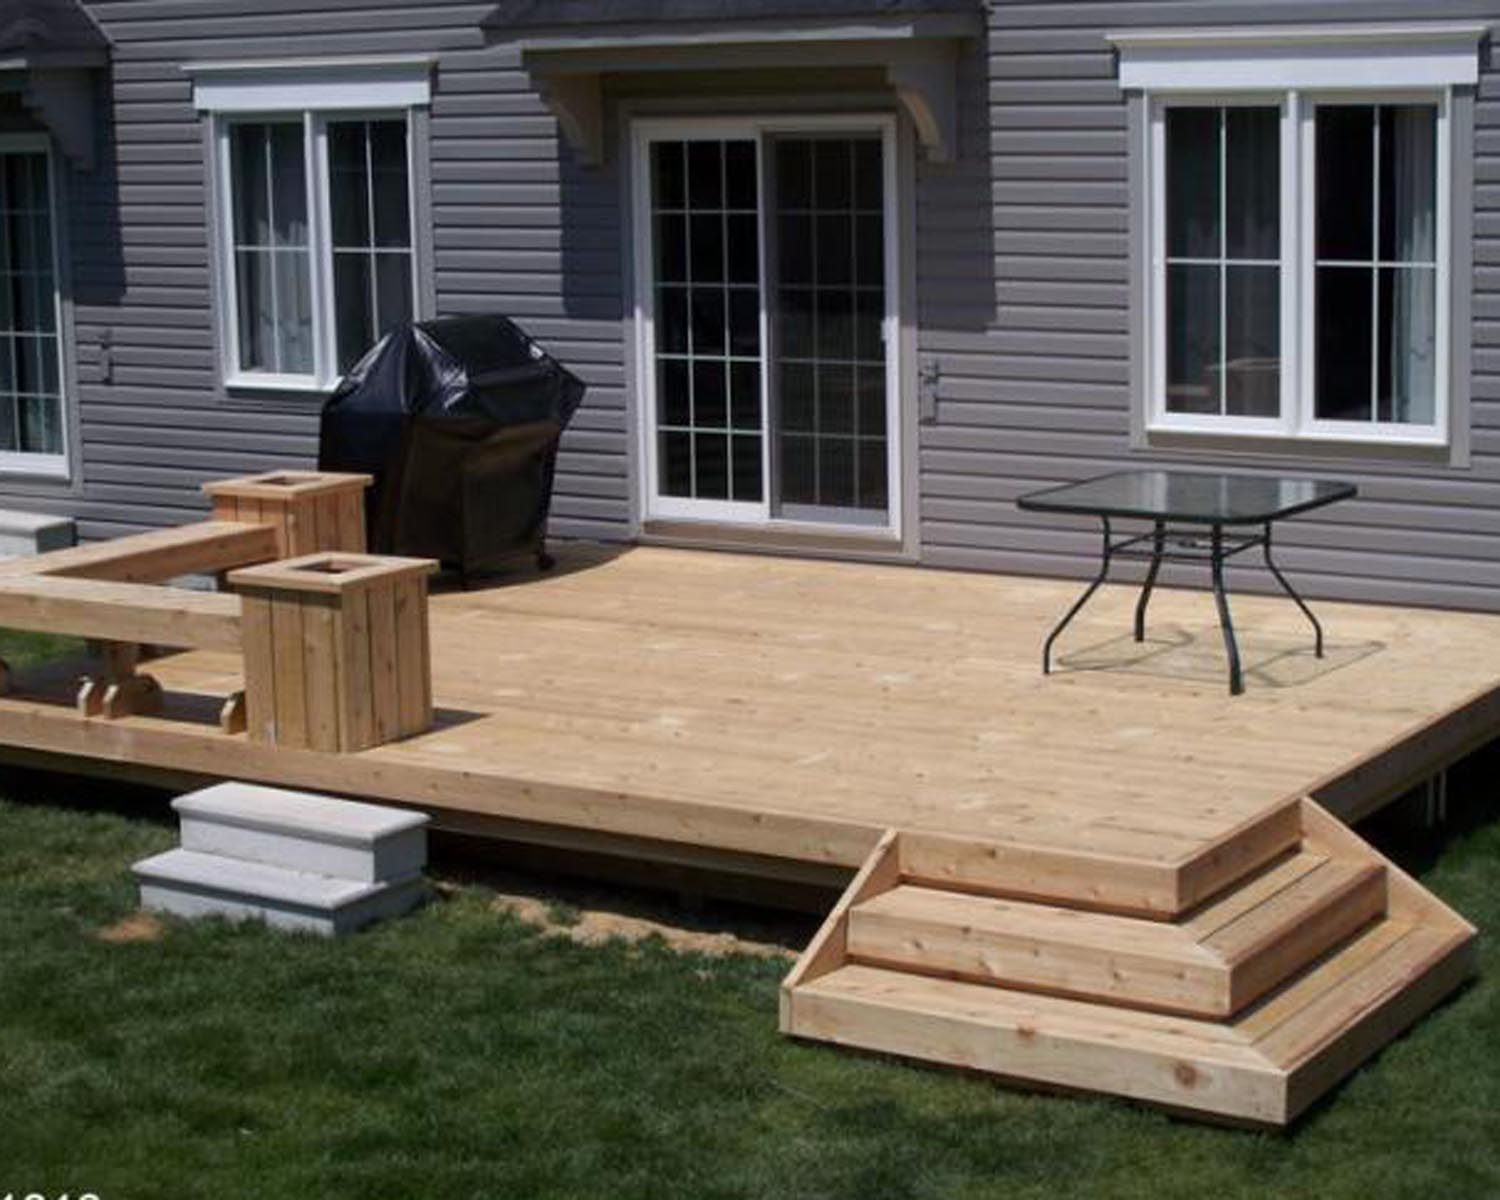 17 best ideas about small deck designs on pinterest patio deck designs decks and free deck plans - Ideas For Deck Design